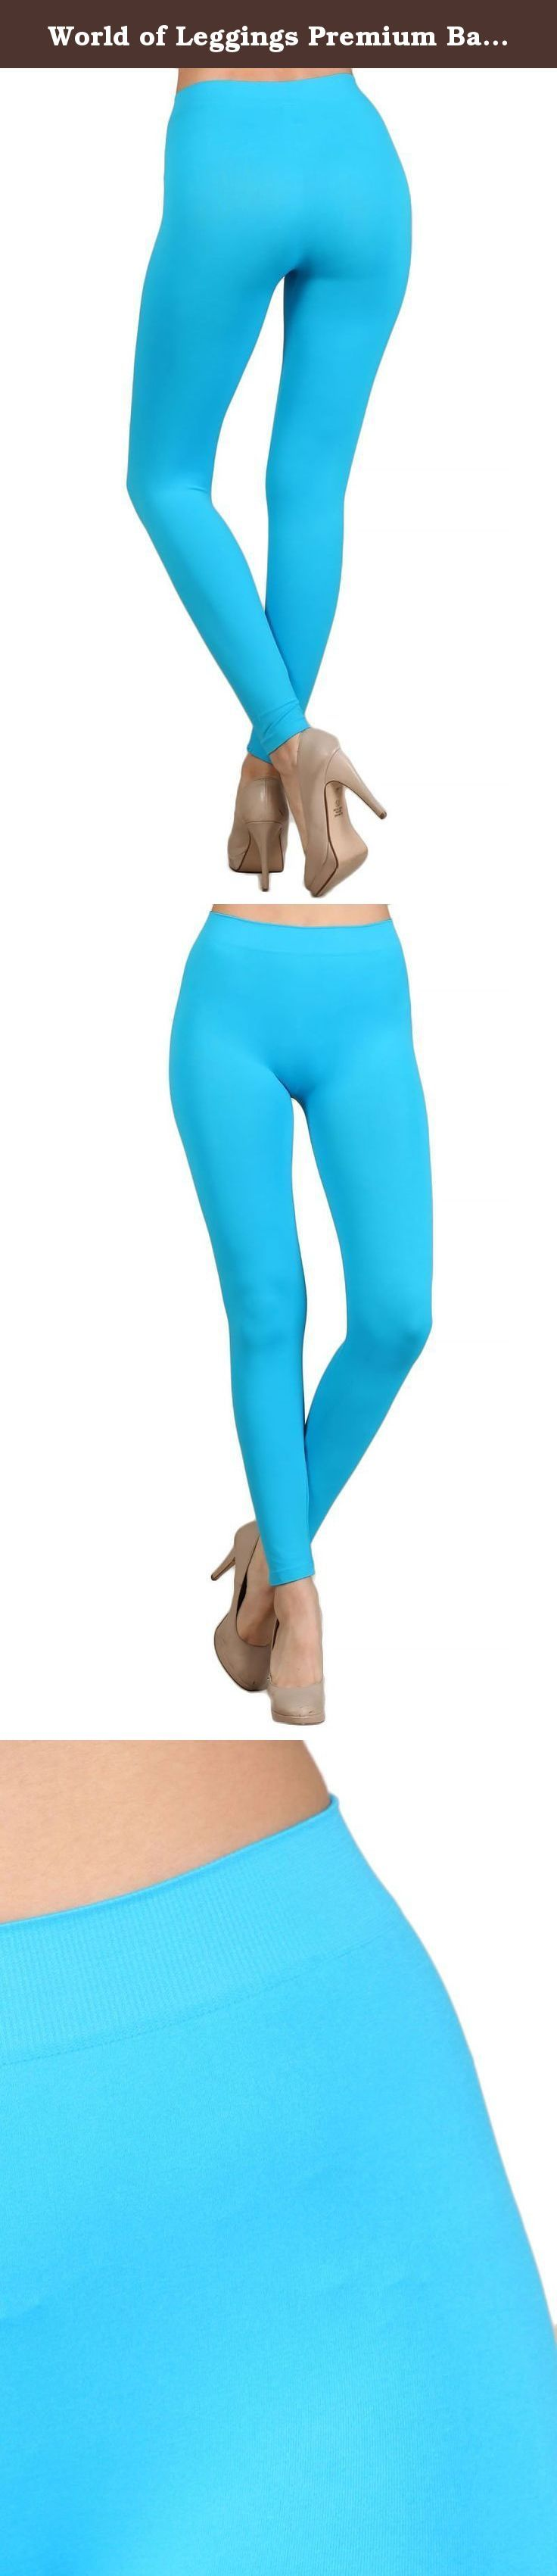 World of Leggings Premium Basic Nylon Spandex Leggings Turquoise. WOMEN'S BASIC NYLON SPANDEX LEGGINGS World of Leggings provides the very best on trend women's basic leggings with the quality you expect and prices that paint a smile. Our women's basic spandex leggings are a must for every women's fashion wardrobe with a huge selection of colors to fit any mood and outfit. The basic leggings are made from a superior quality nylon spandex fabric that is going to make designing quick…